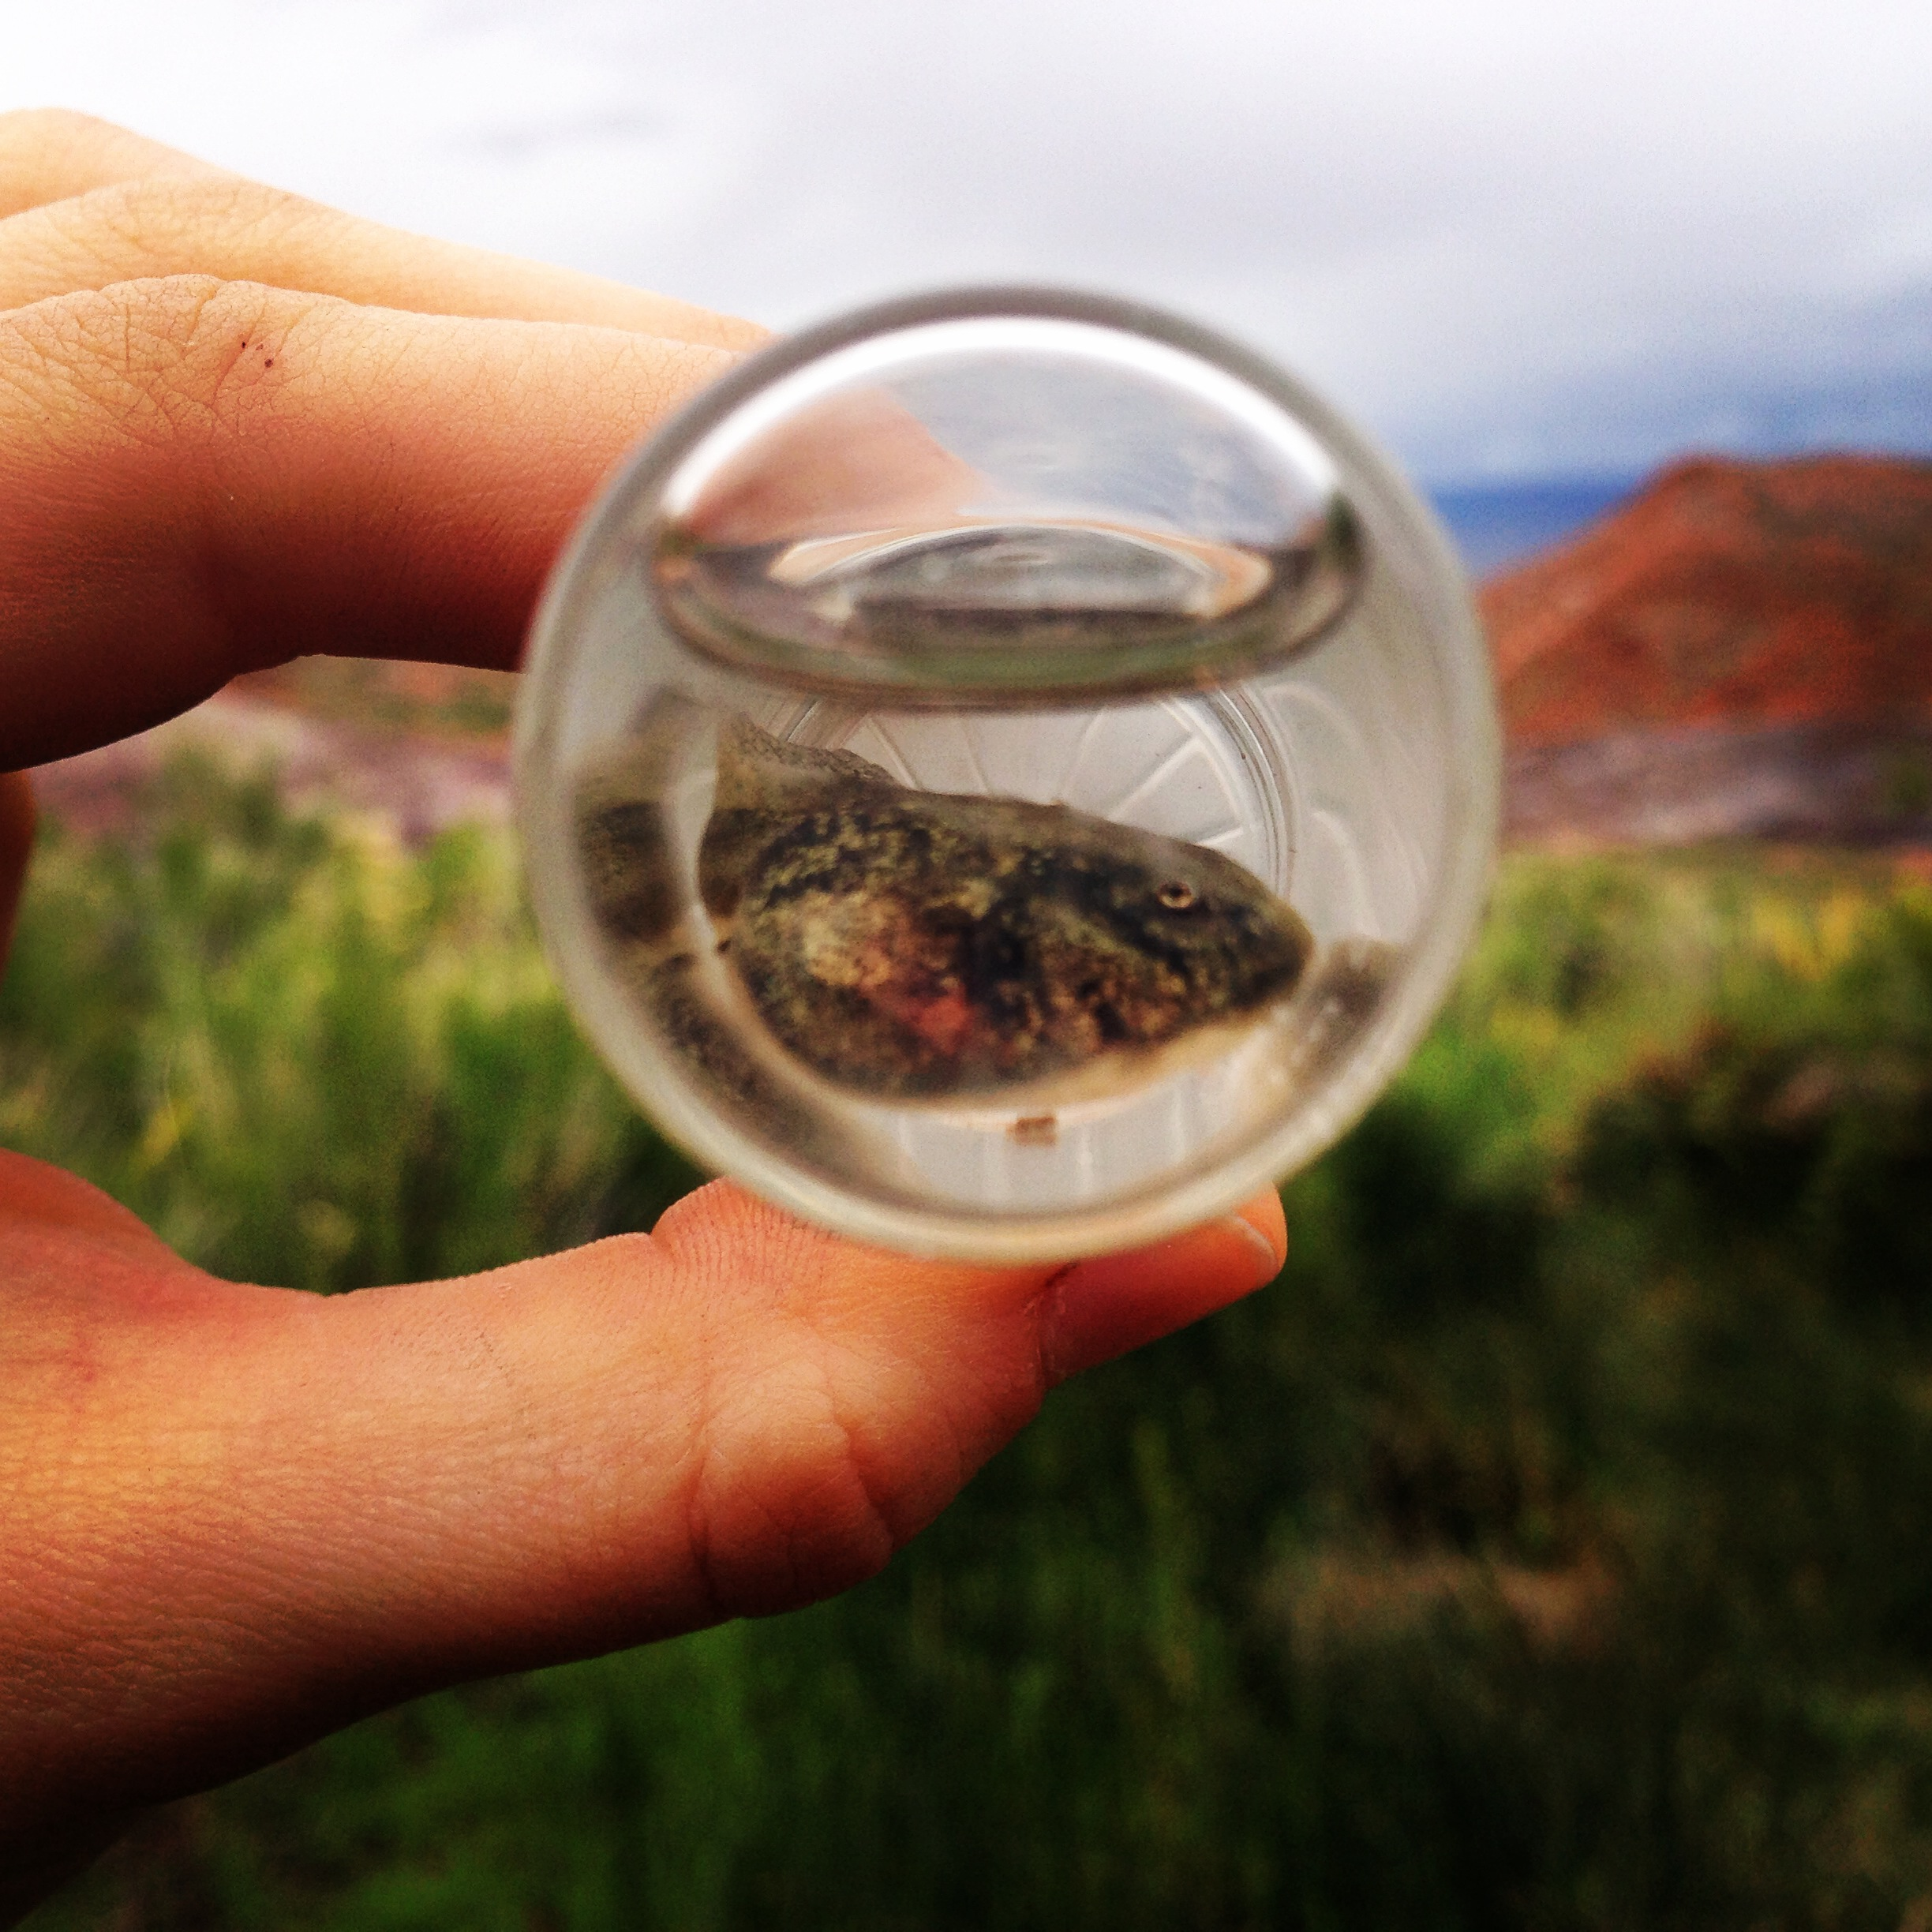 Leopard frog tadpole found in northern Arizona. An example of the types of specimens SSI collects and sorts for springs monitoring. This particular specimen was returned to its habitat after identification. Photo by Molly Joyce.